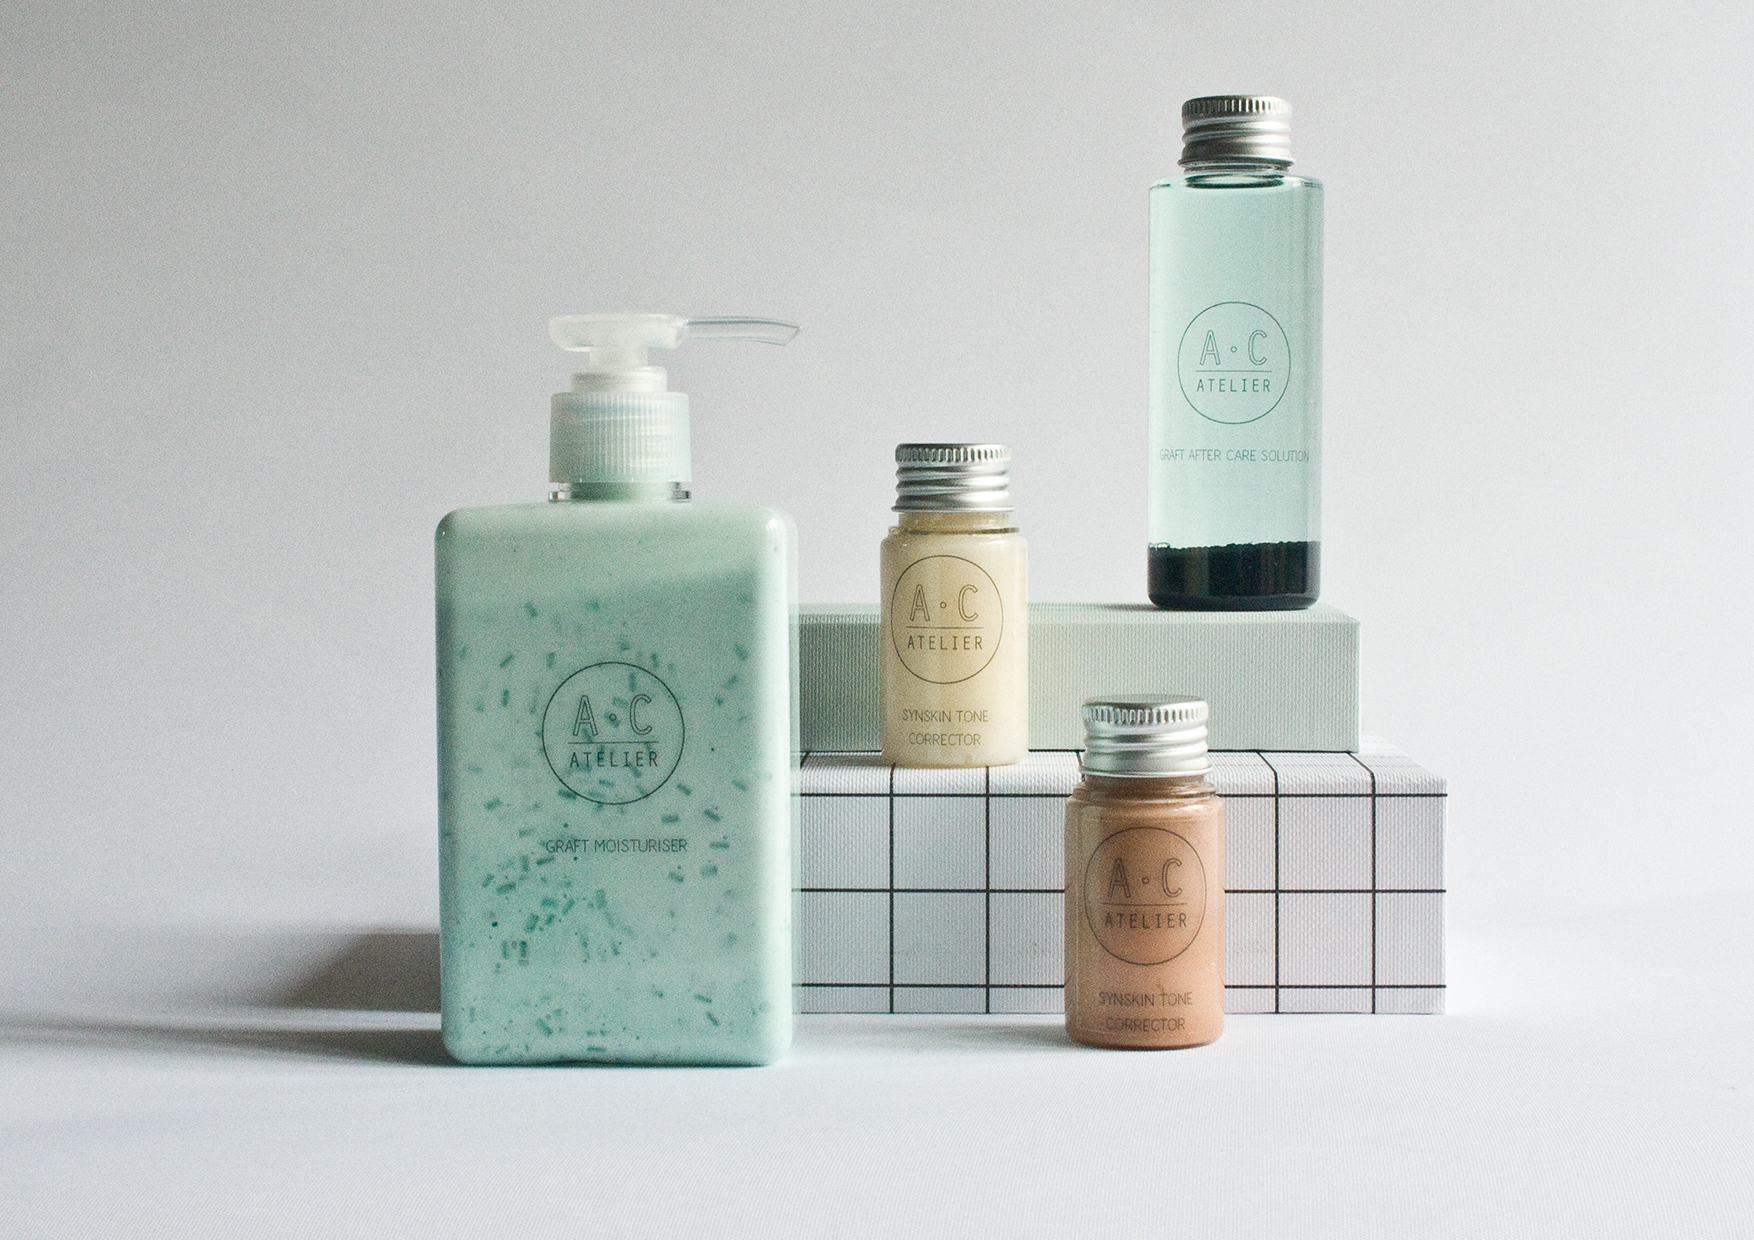 Amy Congdon_A.C. Atelier Skin Care_06.jpg